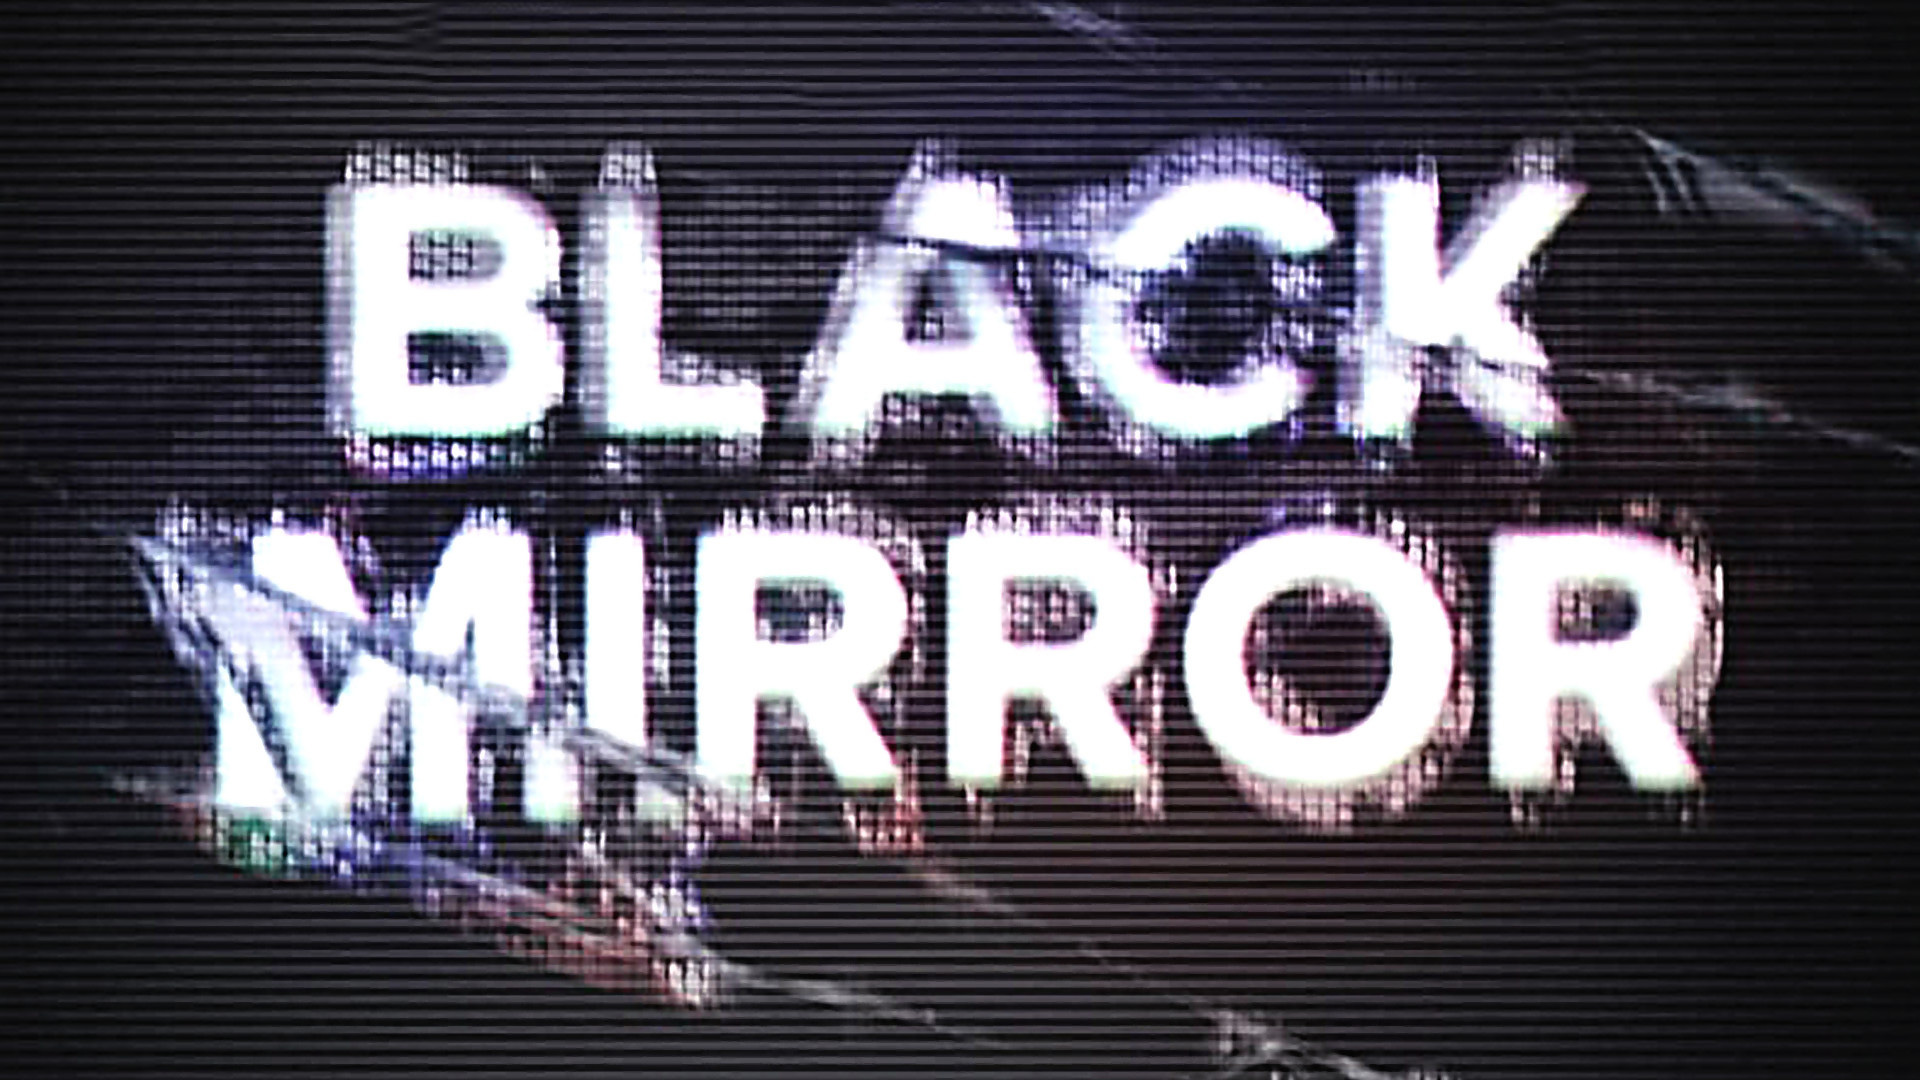 Mirror Wallpaper Hd The Wesleyan Argus Ranking Black Mirror And Its